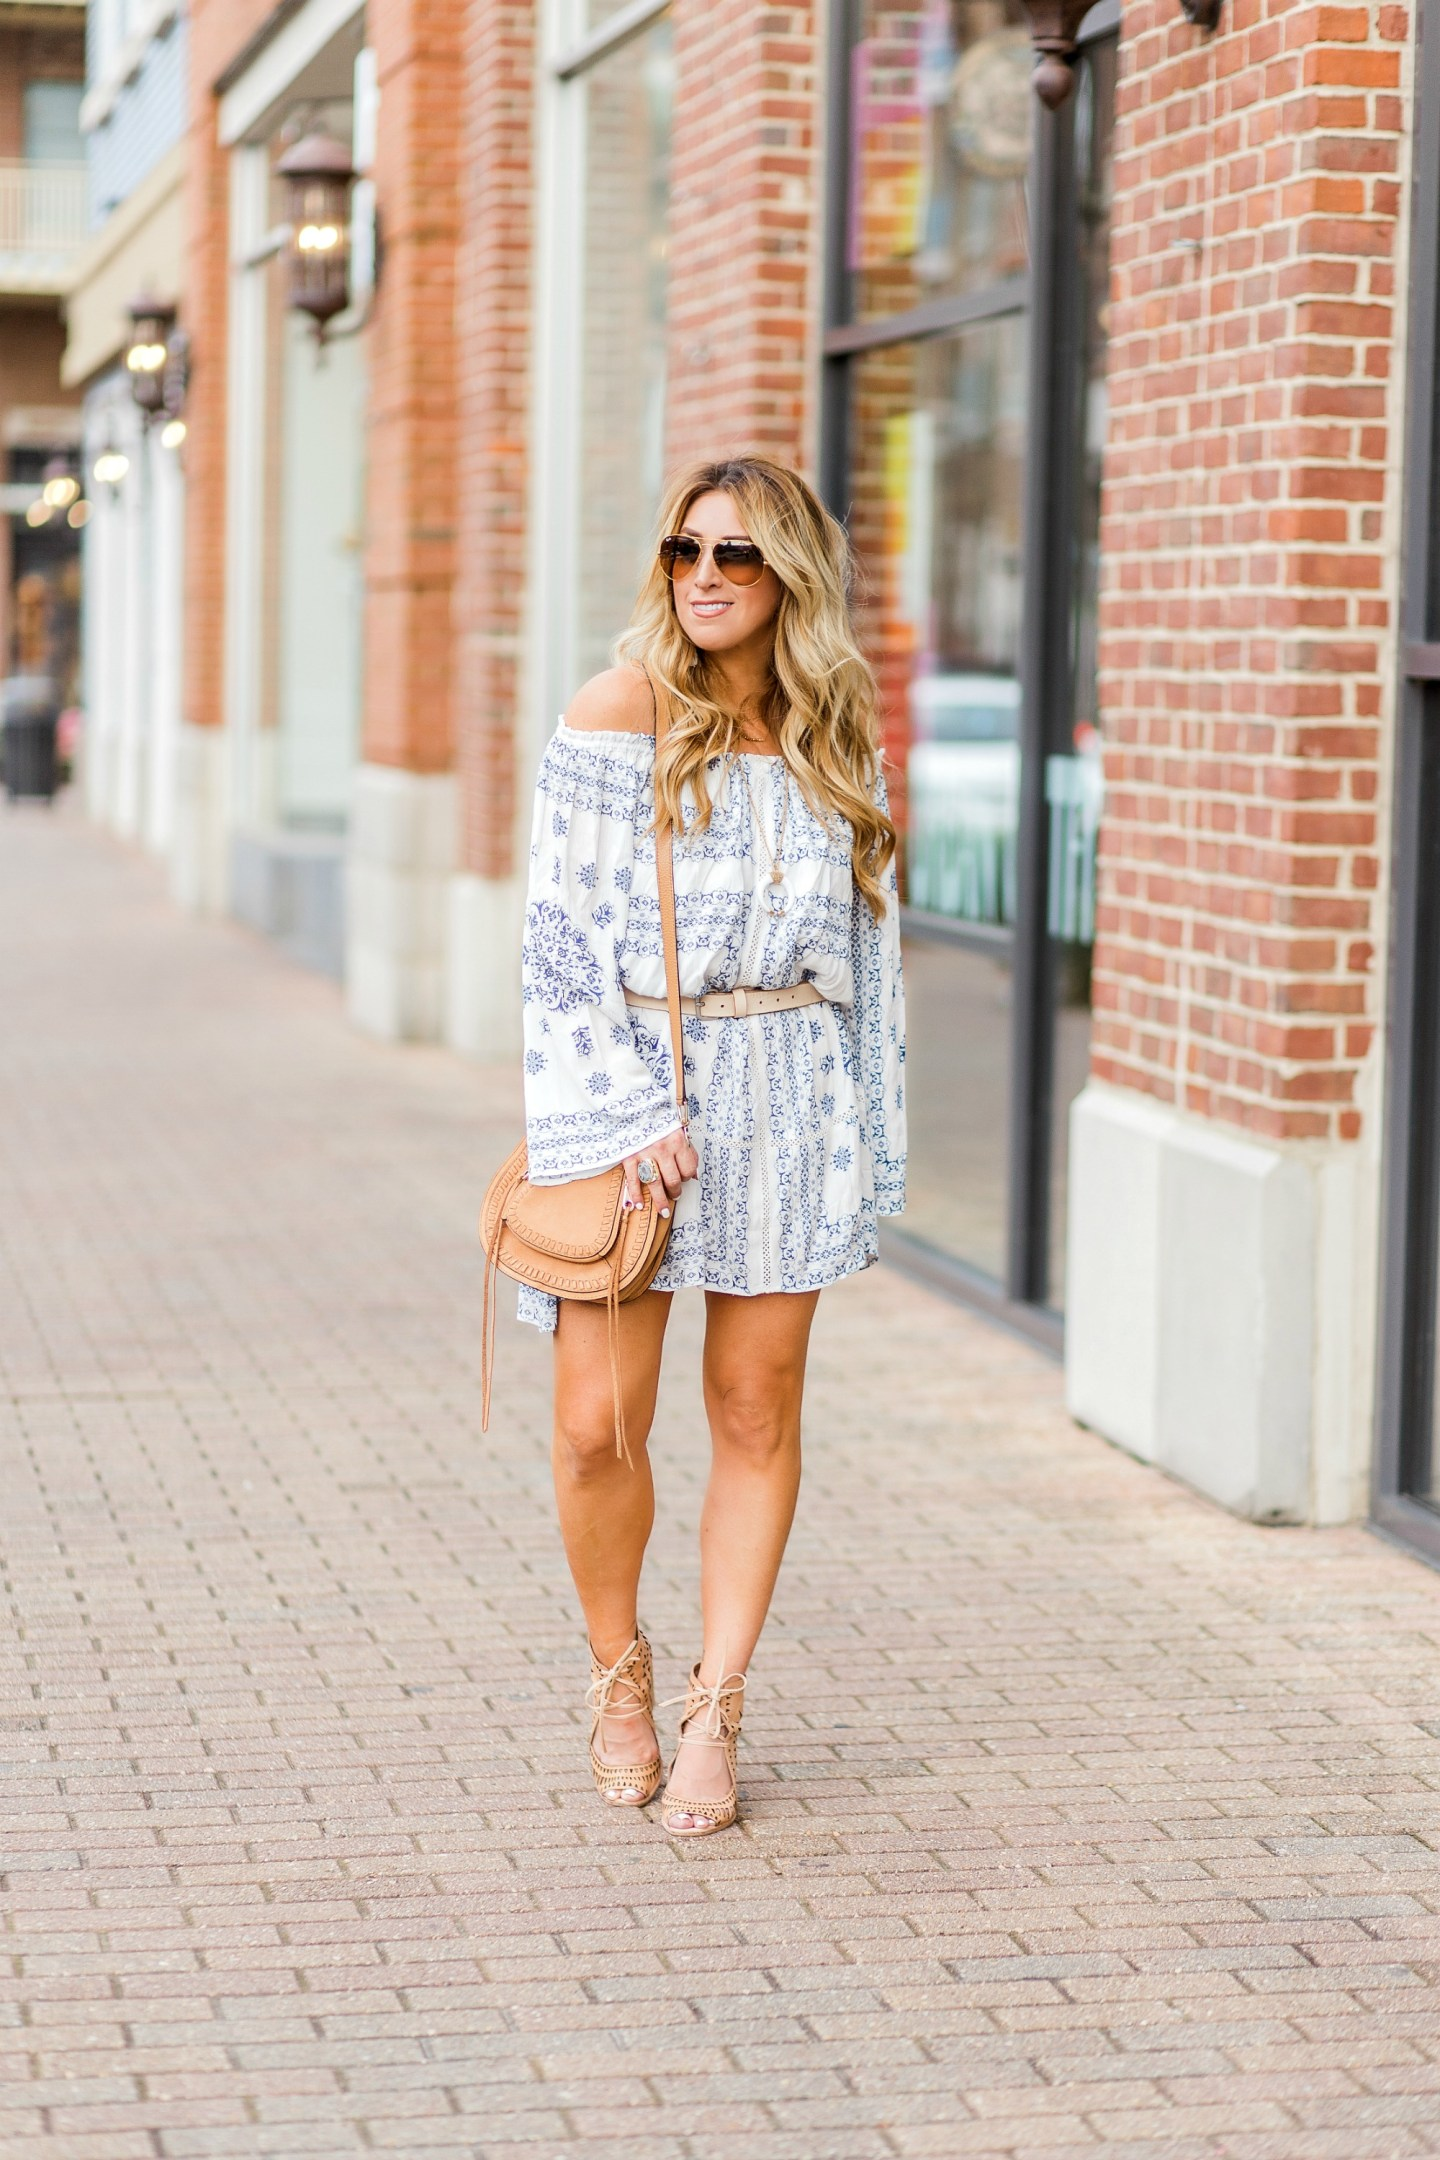 Glam Meets Boho: Summer Style